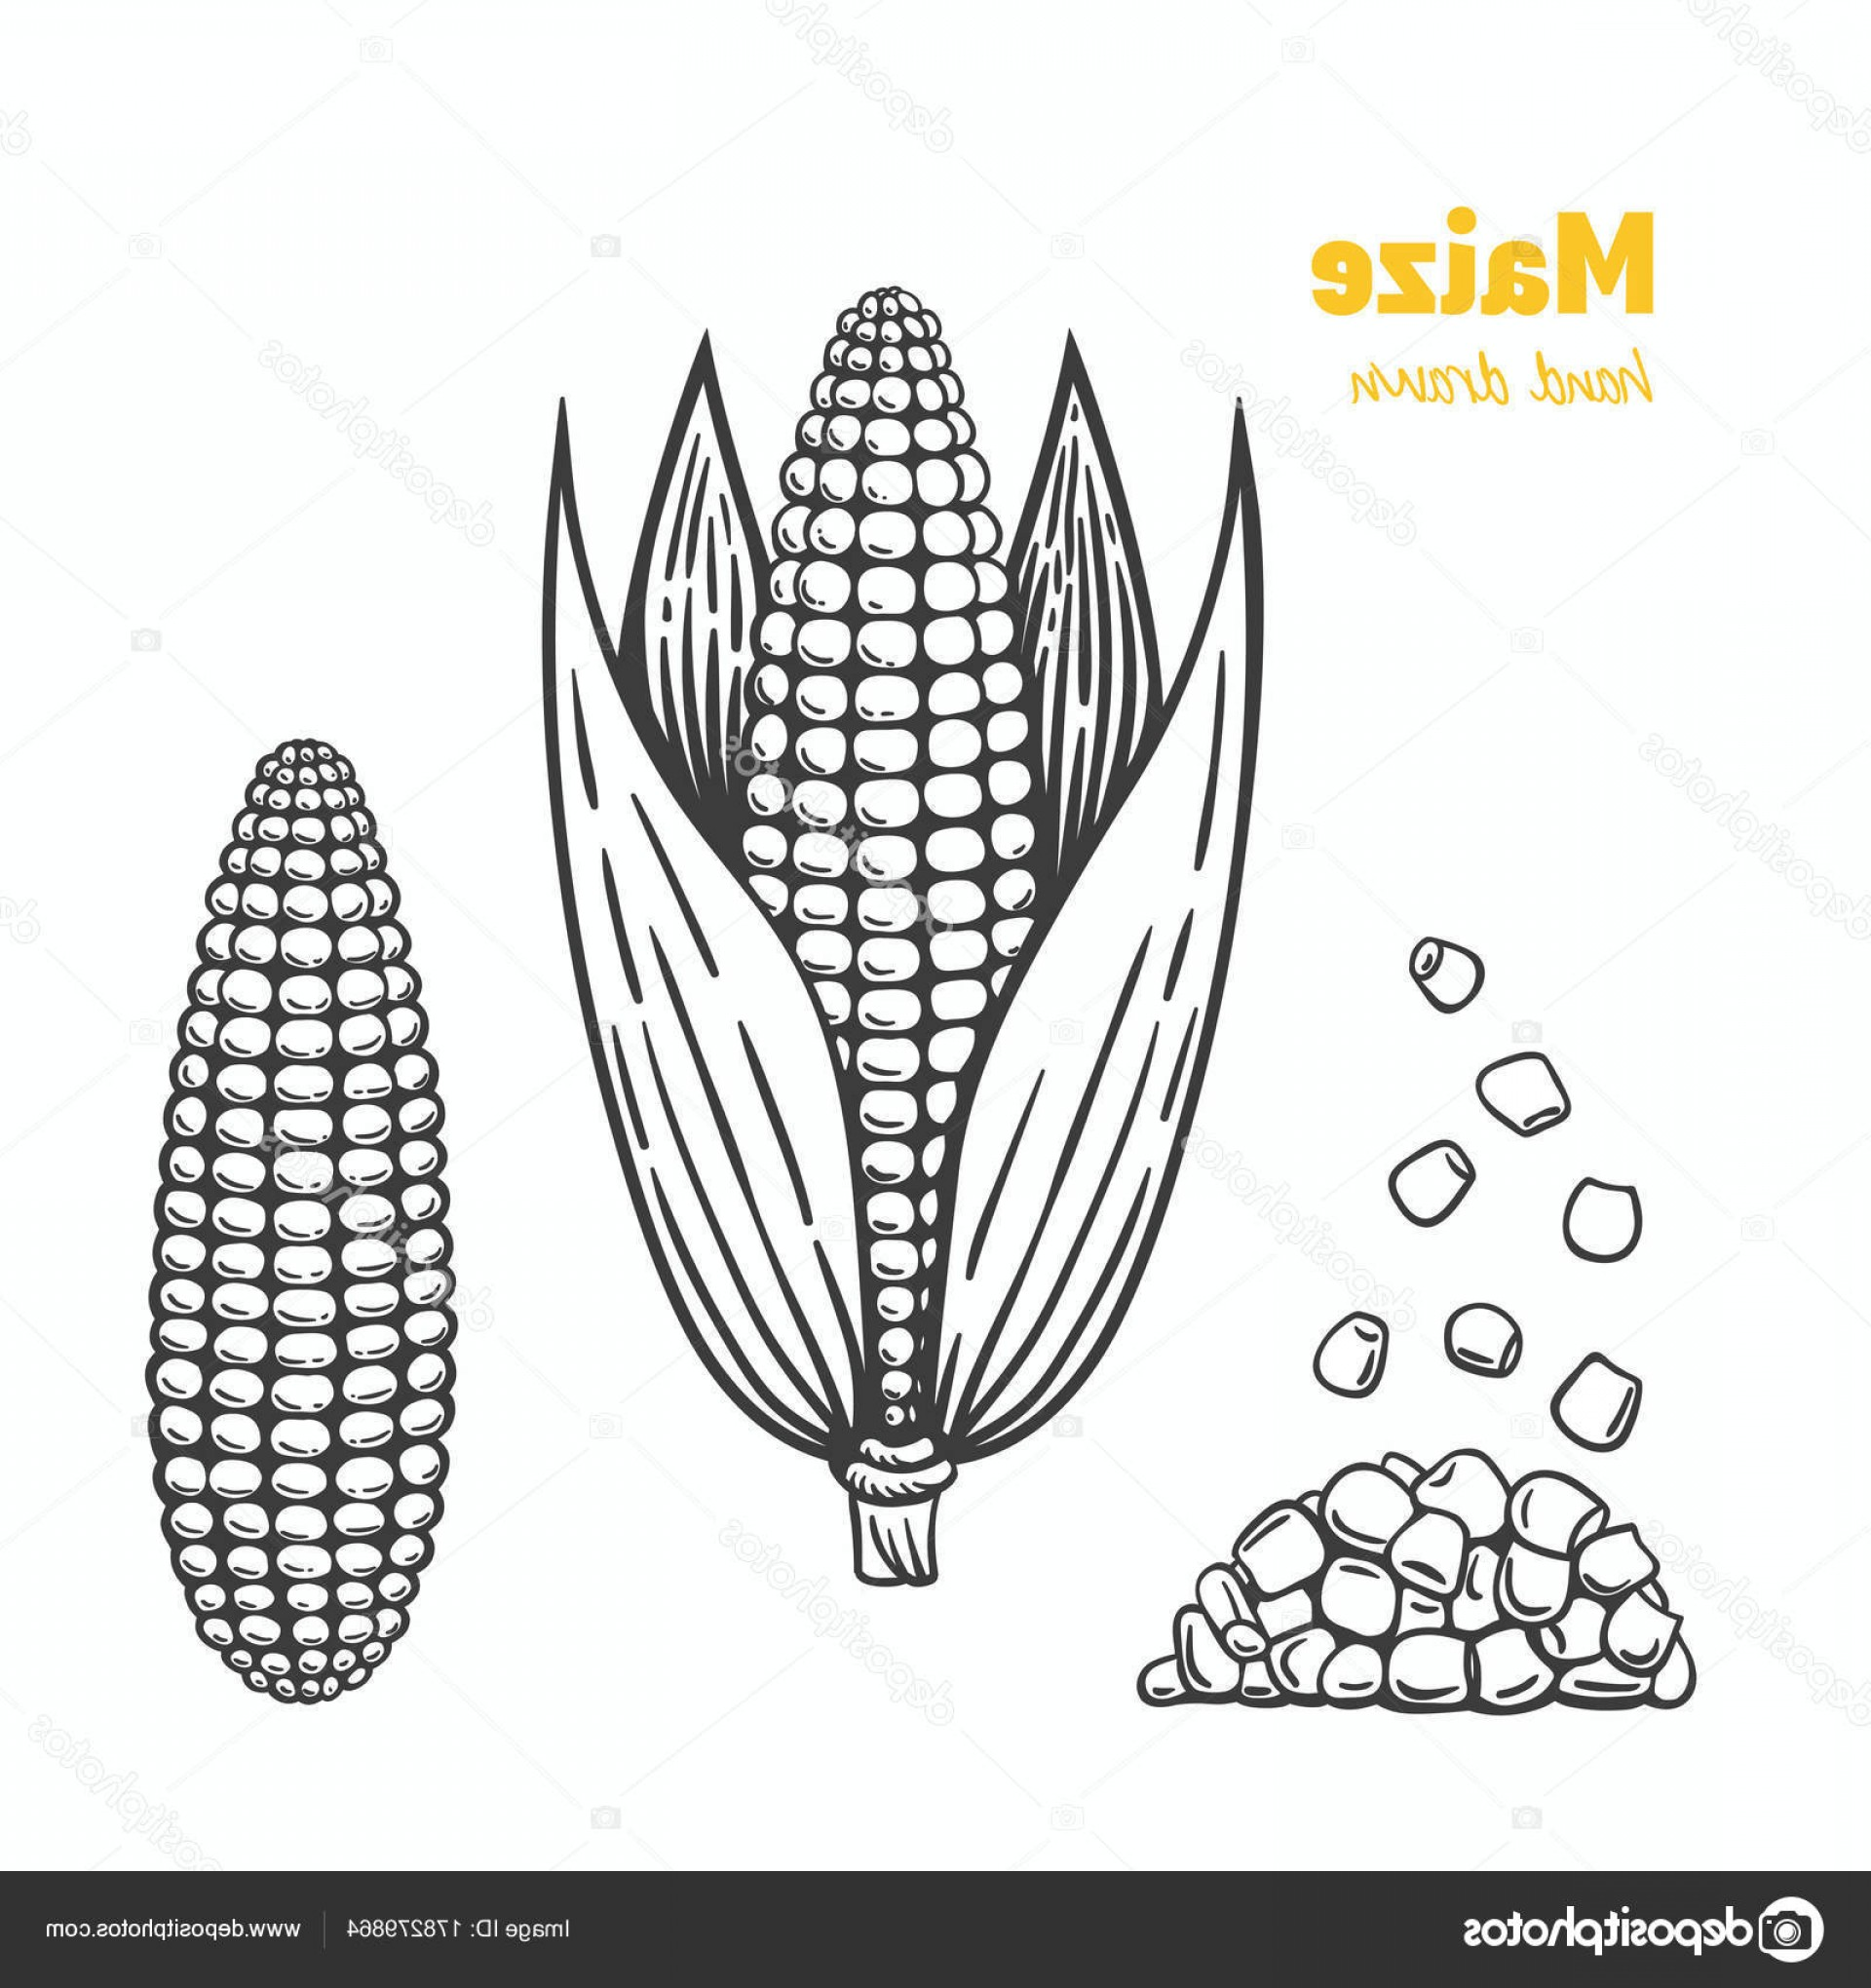 Maize Vector Tree: Stock Illustration Maize Vector Hand Drawn Illustration